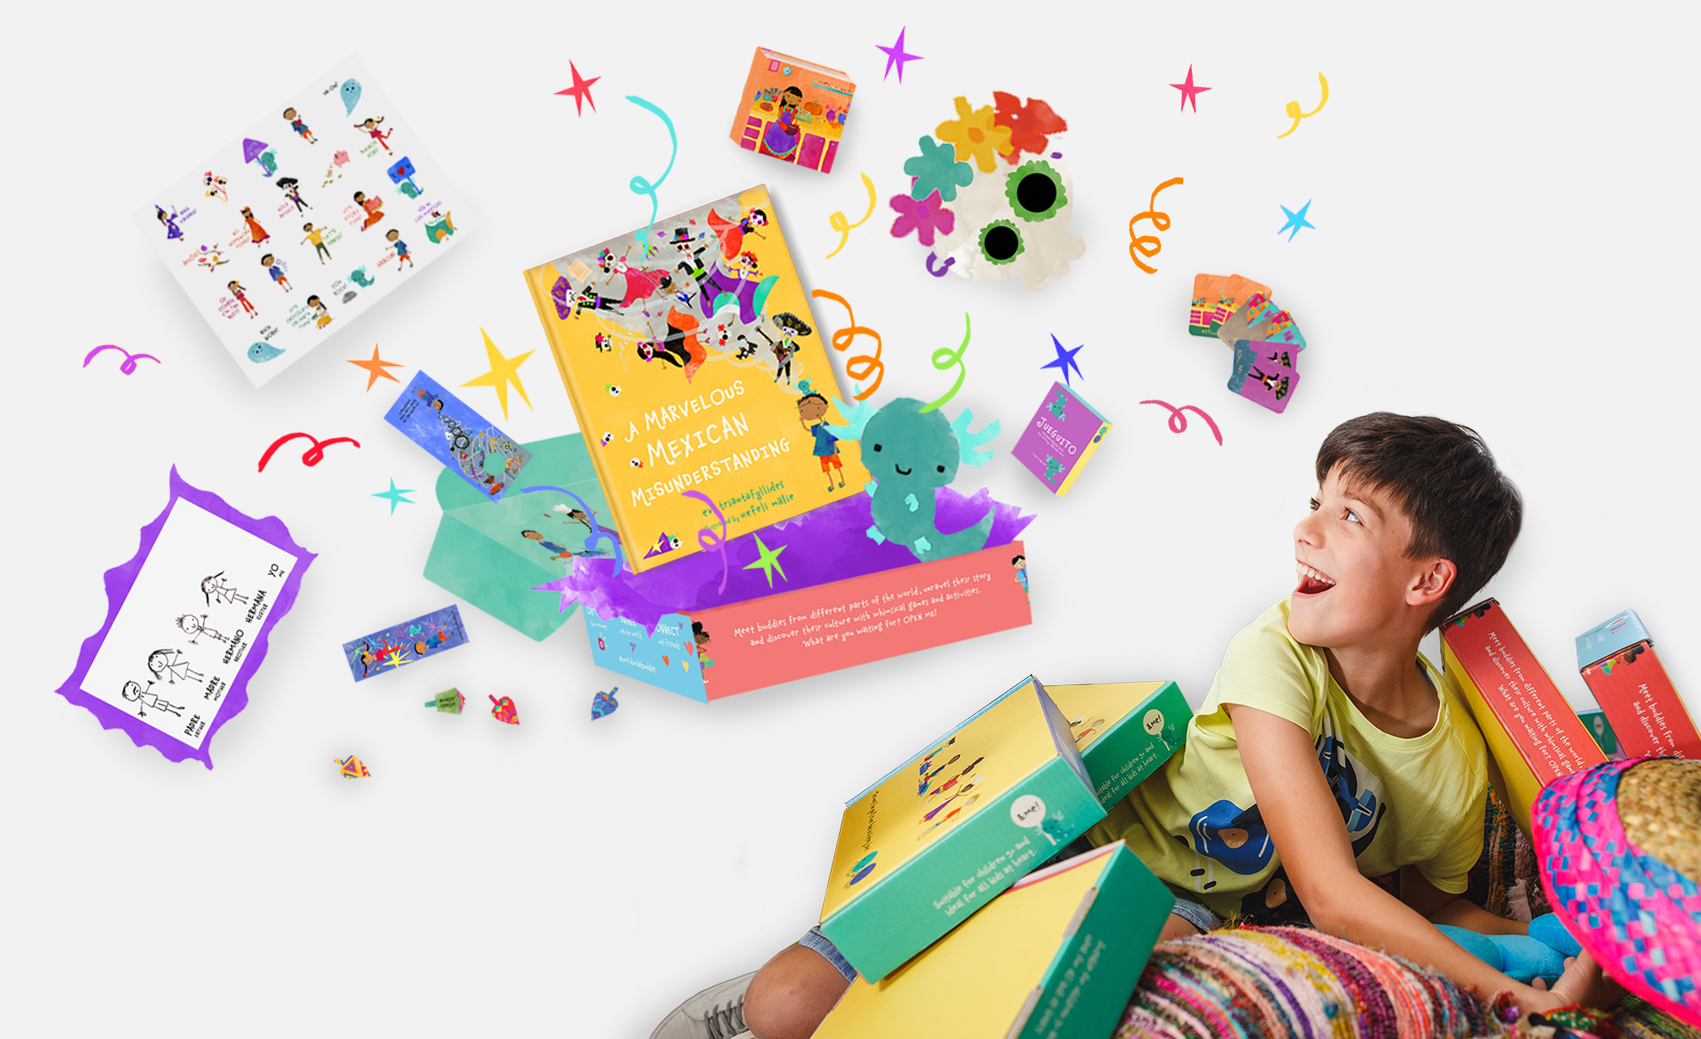 Mexico's story box - A box bursting with toys, games, activities and wonders. An out-of-this-box funtabulous gift for every little and the perfect introduction to the Mexican culture.